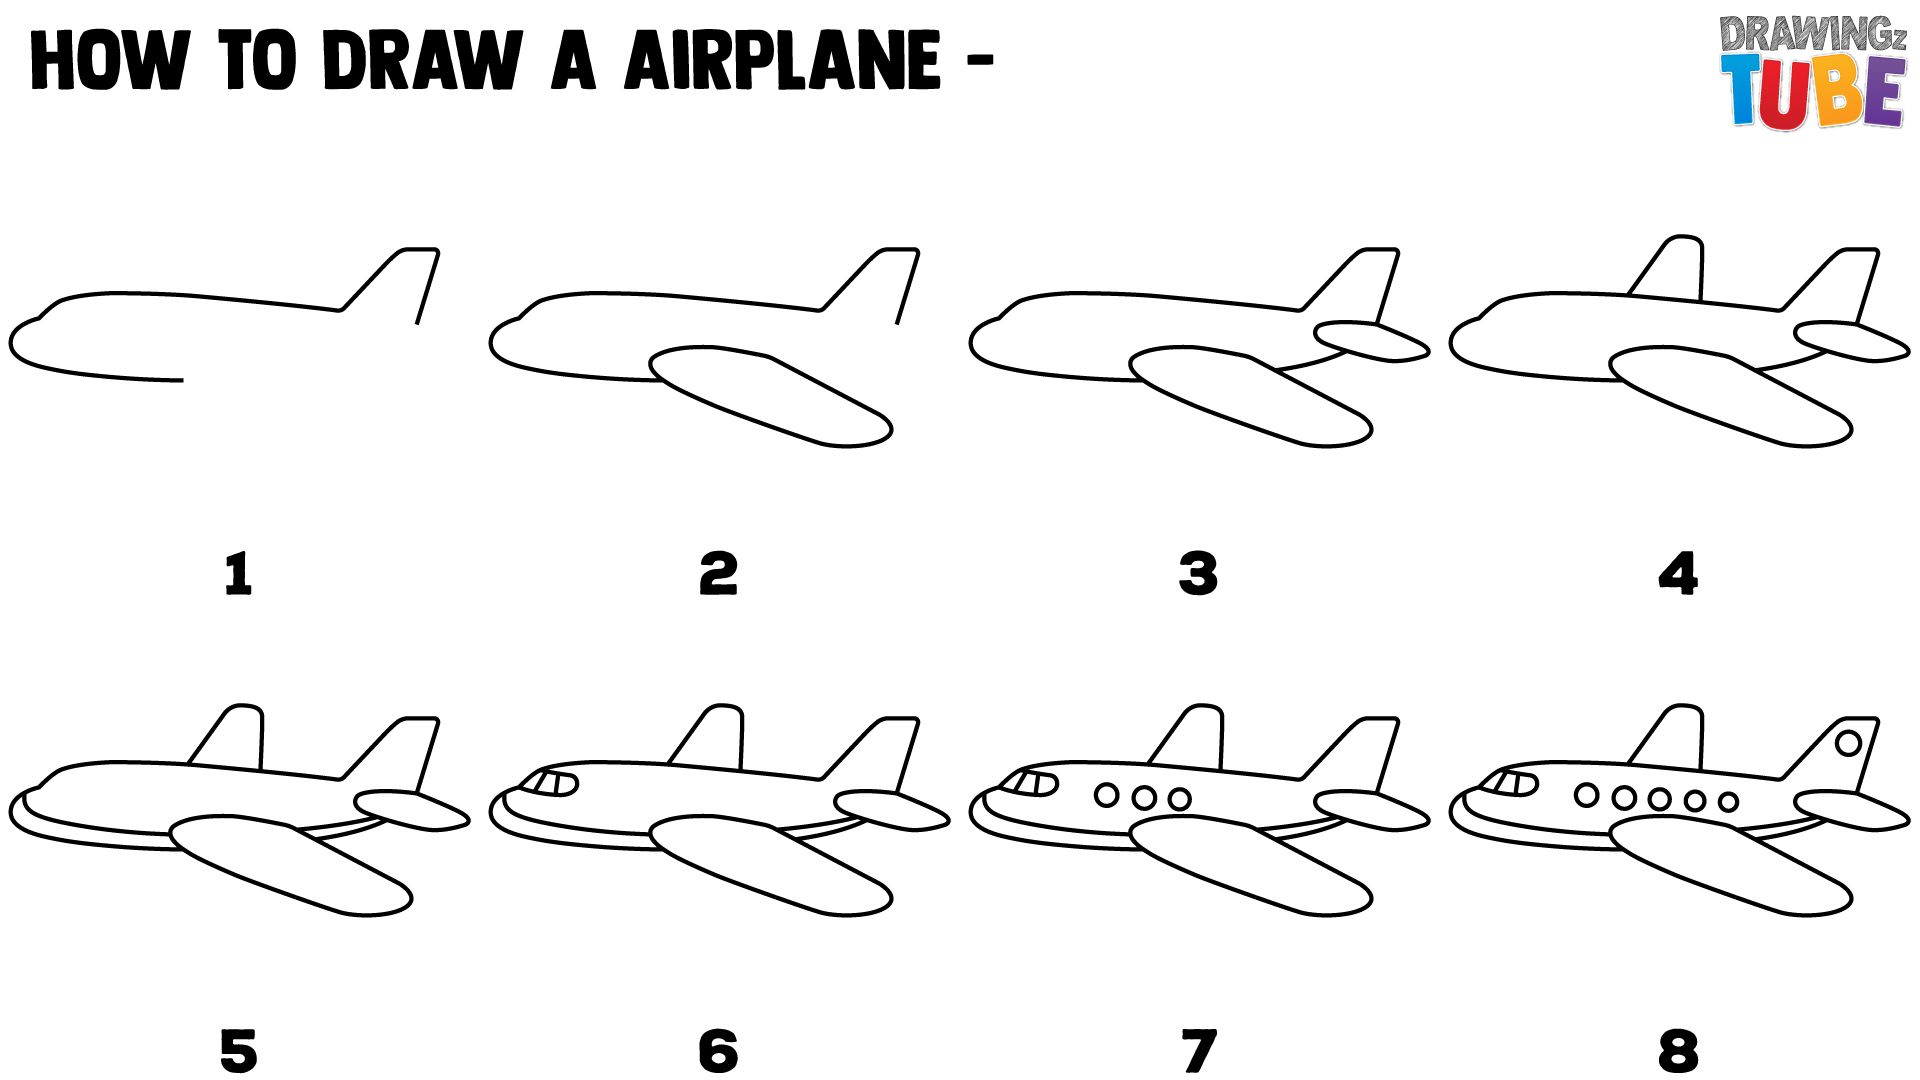 how to draw an airplane step by step how to draw old fashioned airplanes thrifty scissors how airplane to draw step by step an